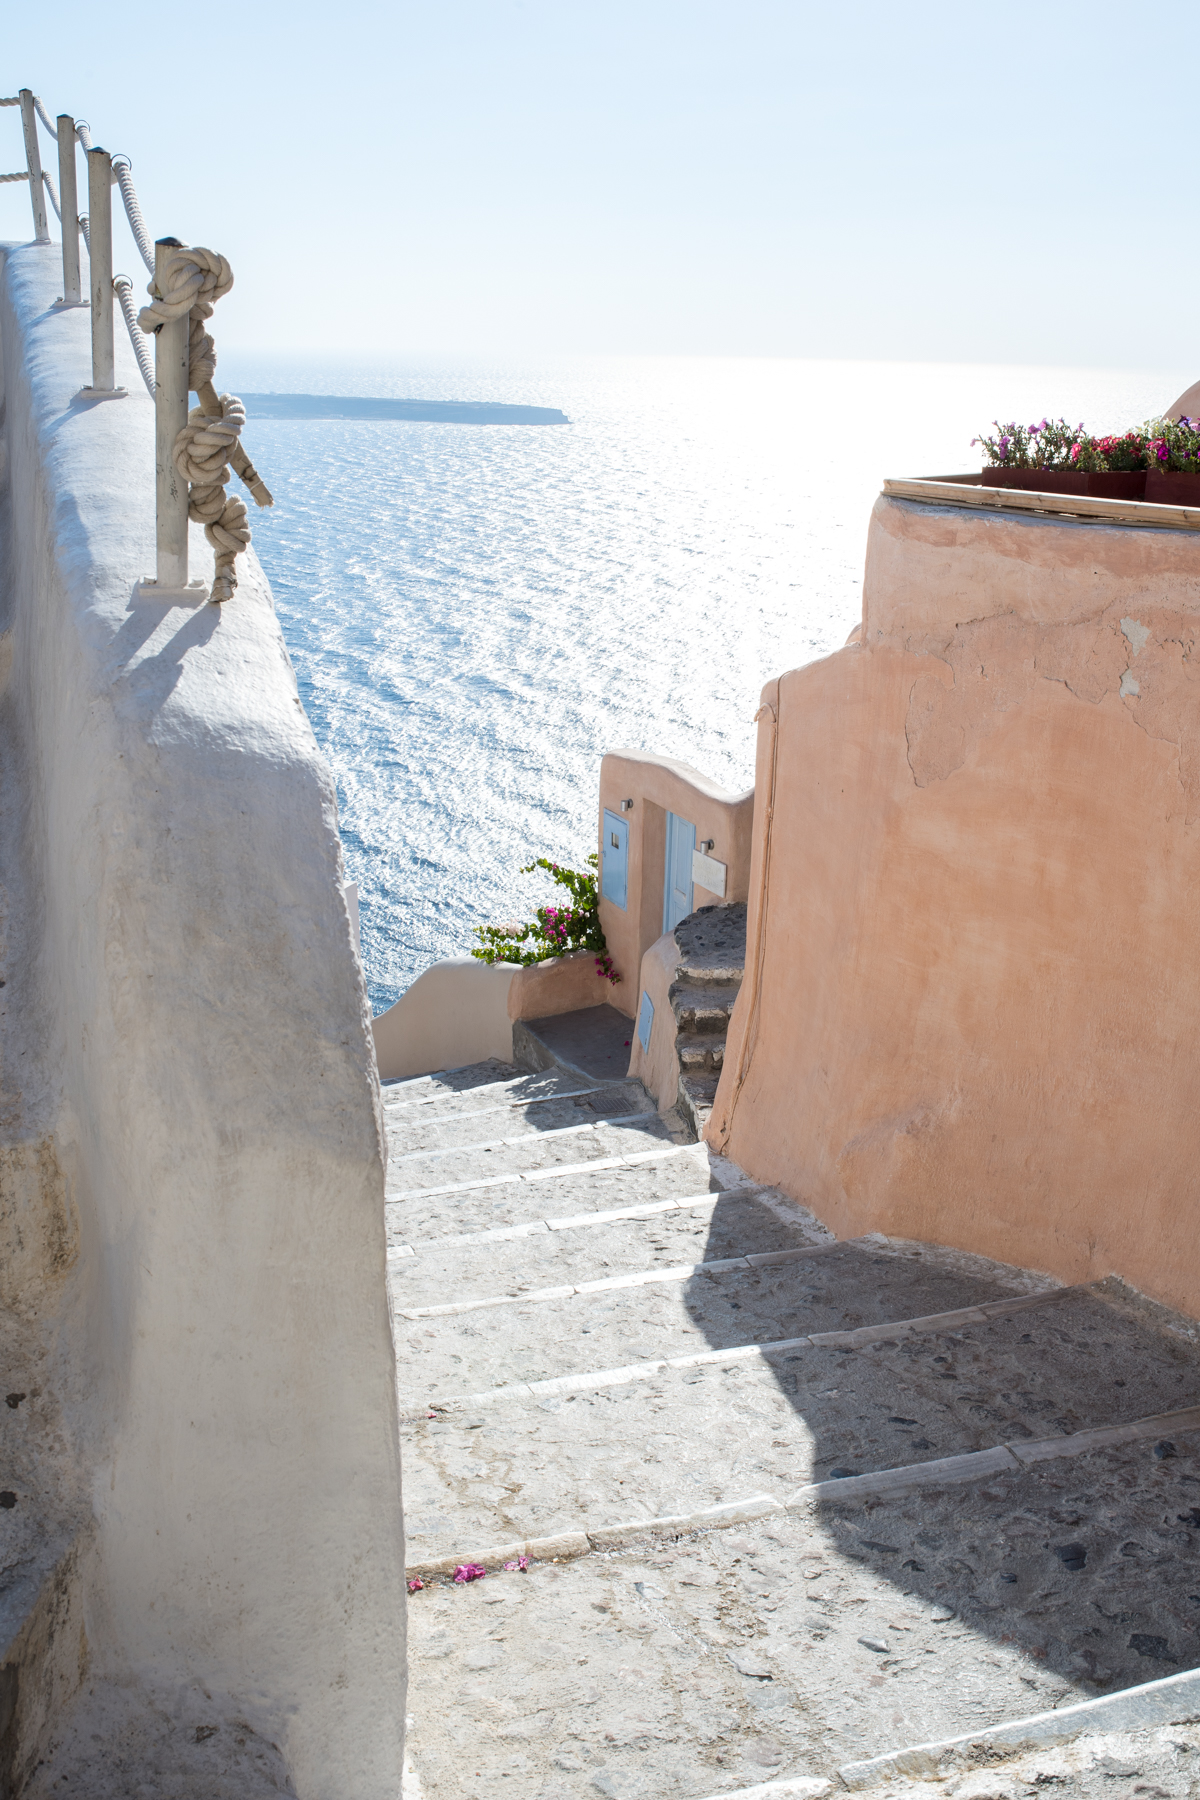 Stacie Flinner Travel Guide Santorini Greece-54.jpg